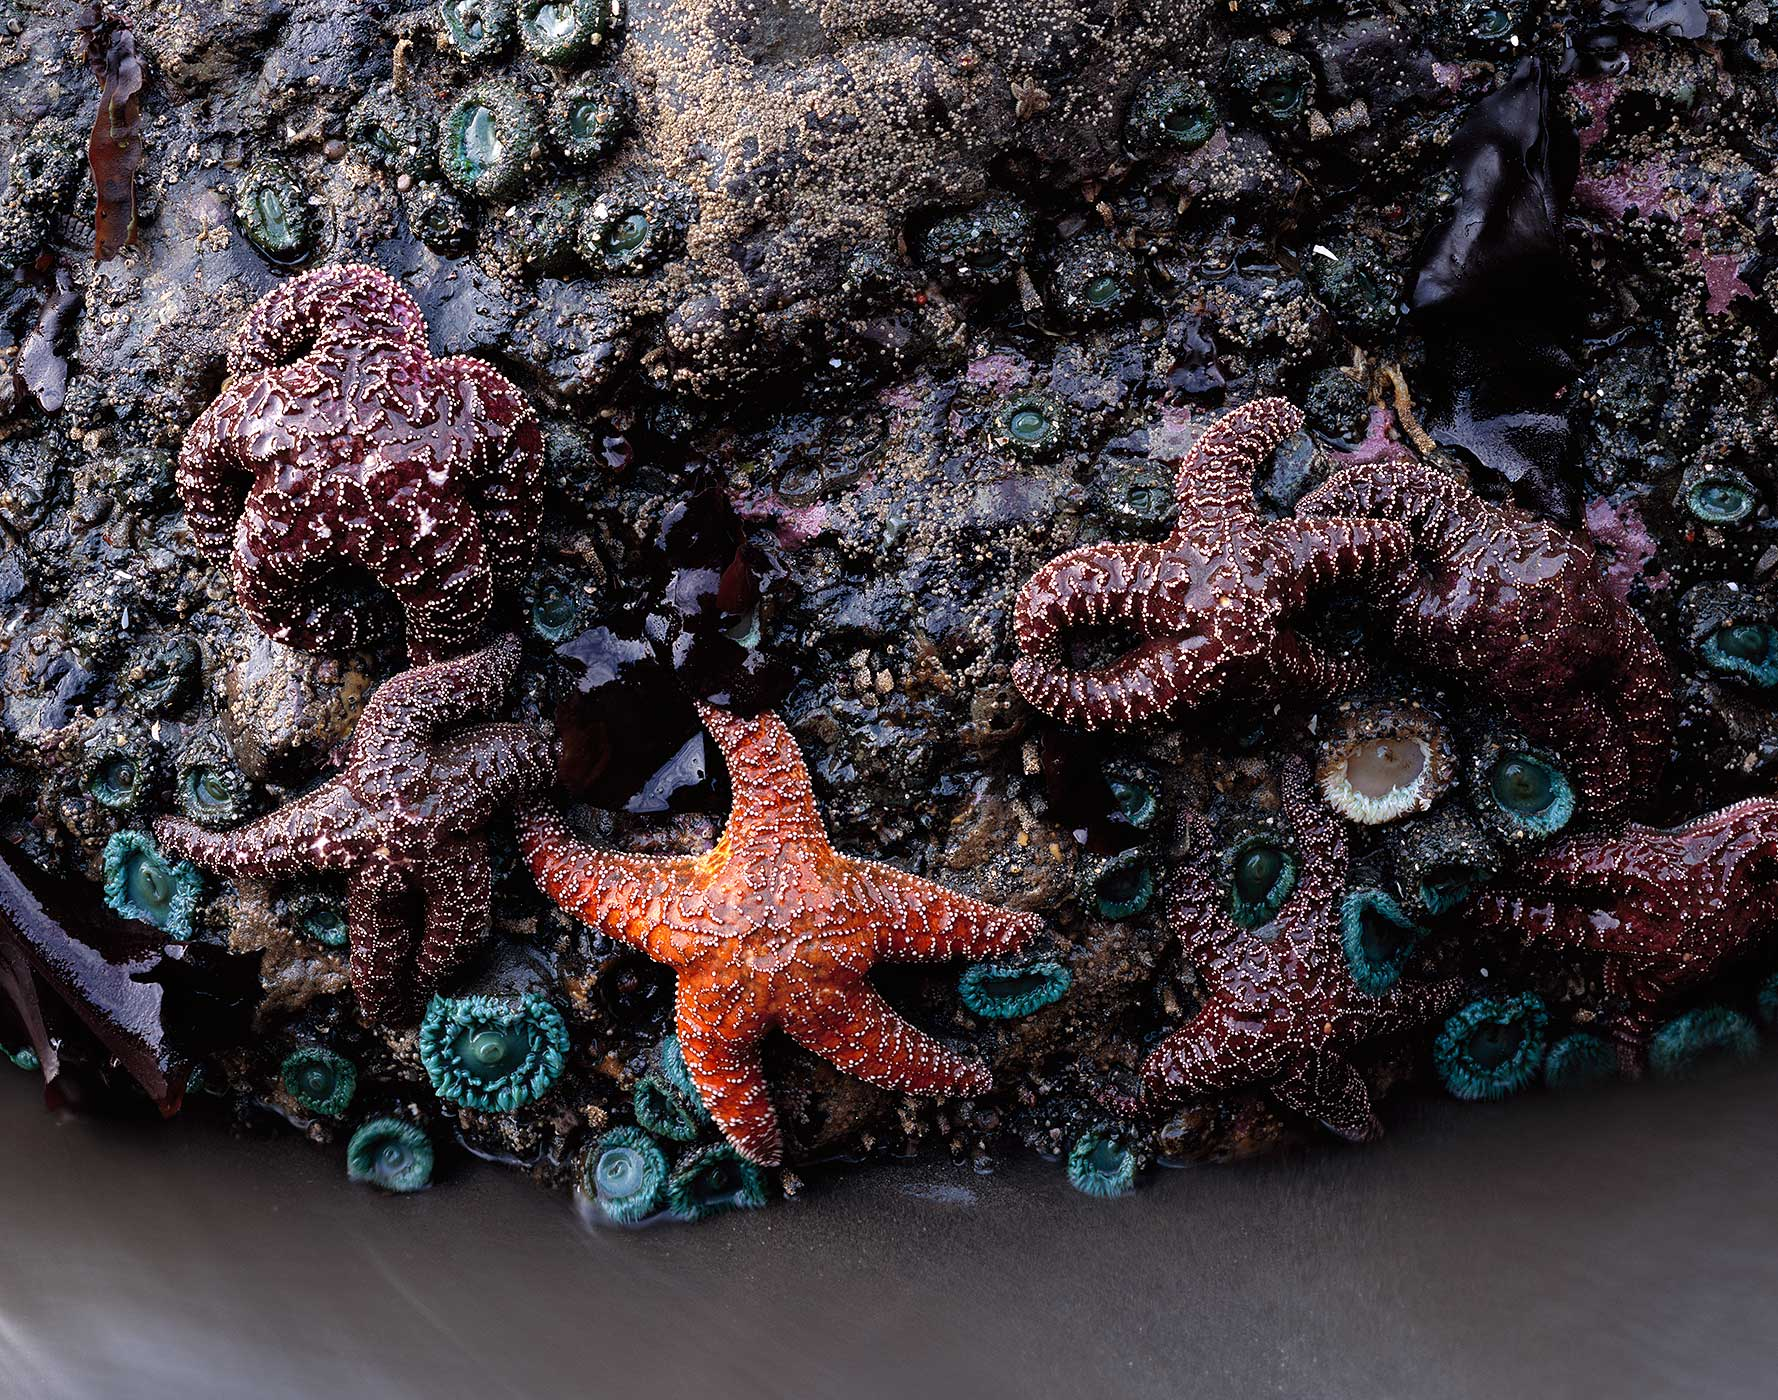 1028 Sea Stars & Anemones, Olympic National Park, Washington